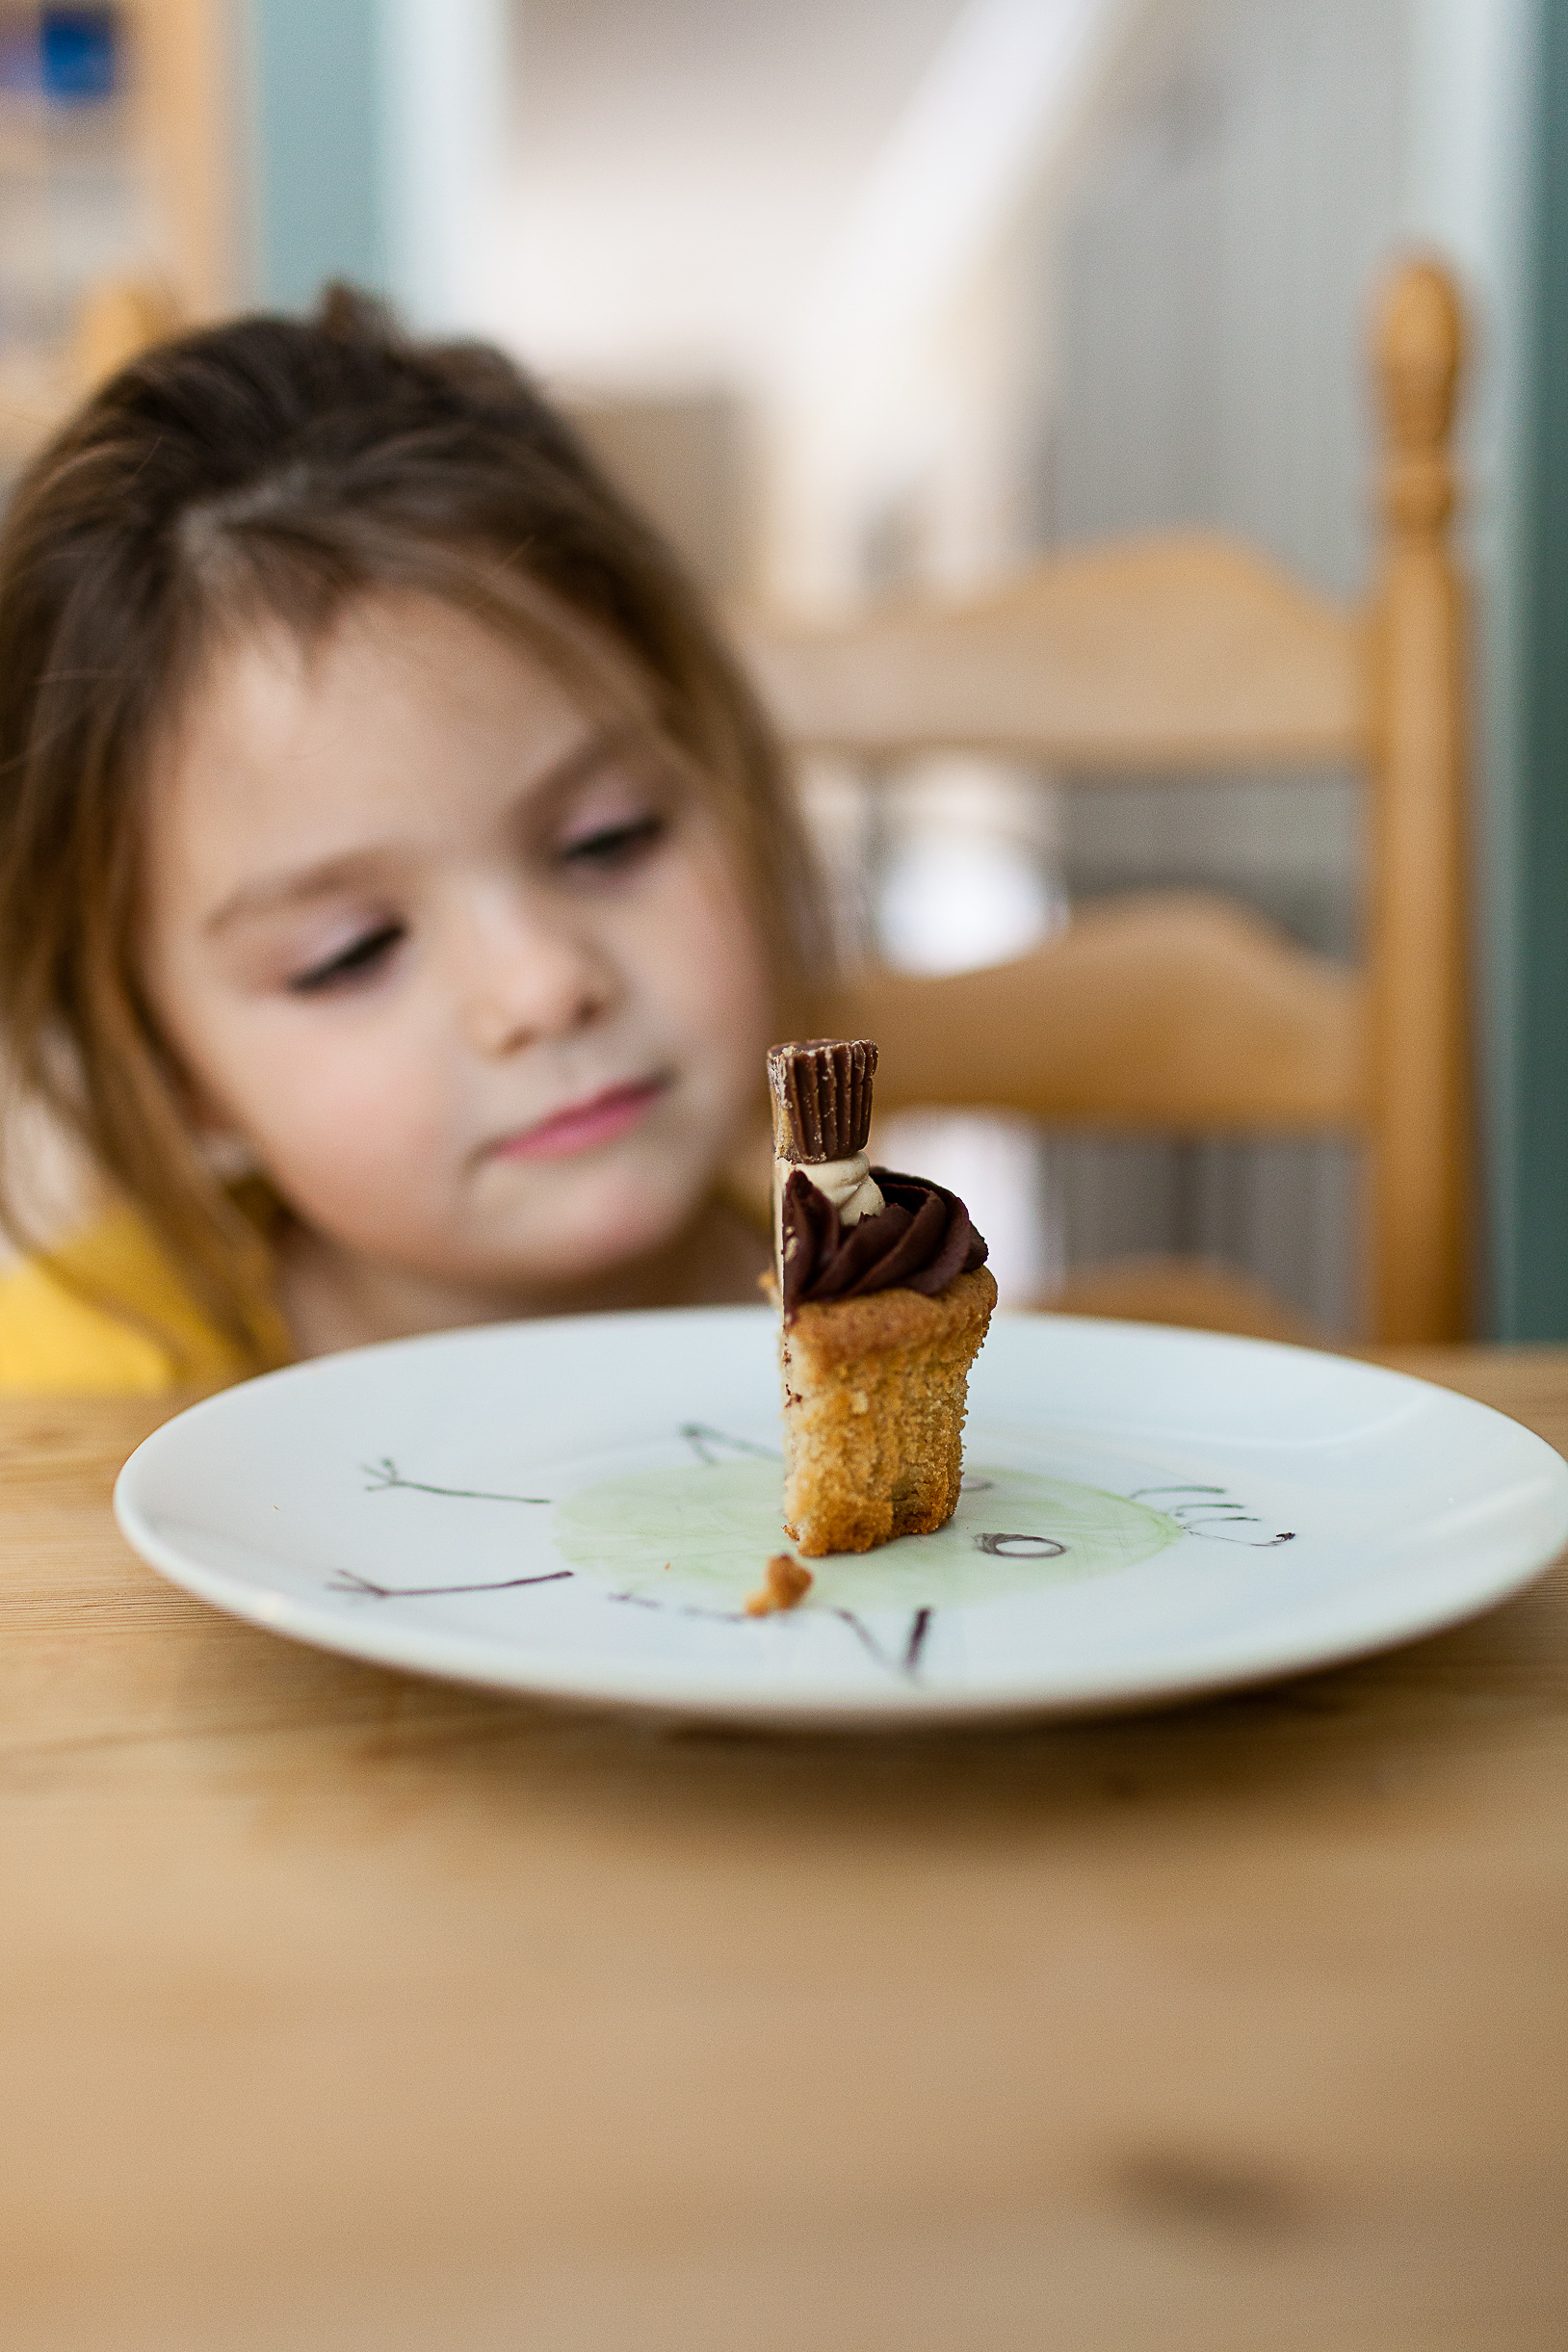 Overcoming Fussy Eating - £75As a mum of three I know what a worry it can be when your little one is a fussy eater.This unique 90 minute 1:1 coaching workshop (either online or in-home if you live in BANES and would prefer) supports you to move mealtimes from a place of pleading, bribery and anxiety to a relaxed and cheerful experience, in which your child feels happy to explore and broaden the variety of foods they eat. Using specific and proven tools to end short order cooking or three meals to please one family! I help you bring the joy back to family mealtimes.We start the process with a no obligation 30 minute consultation call, where we discuss your family's specific goals. Book yours here.